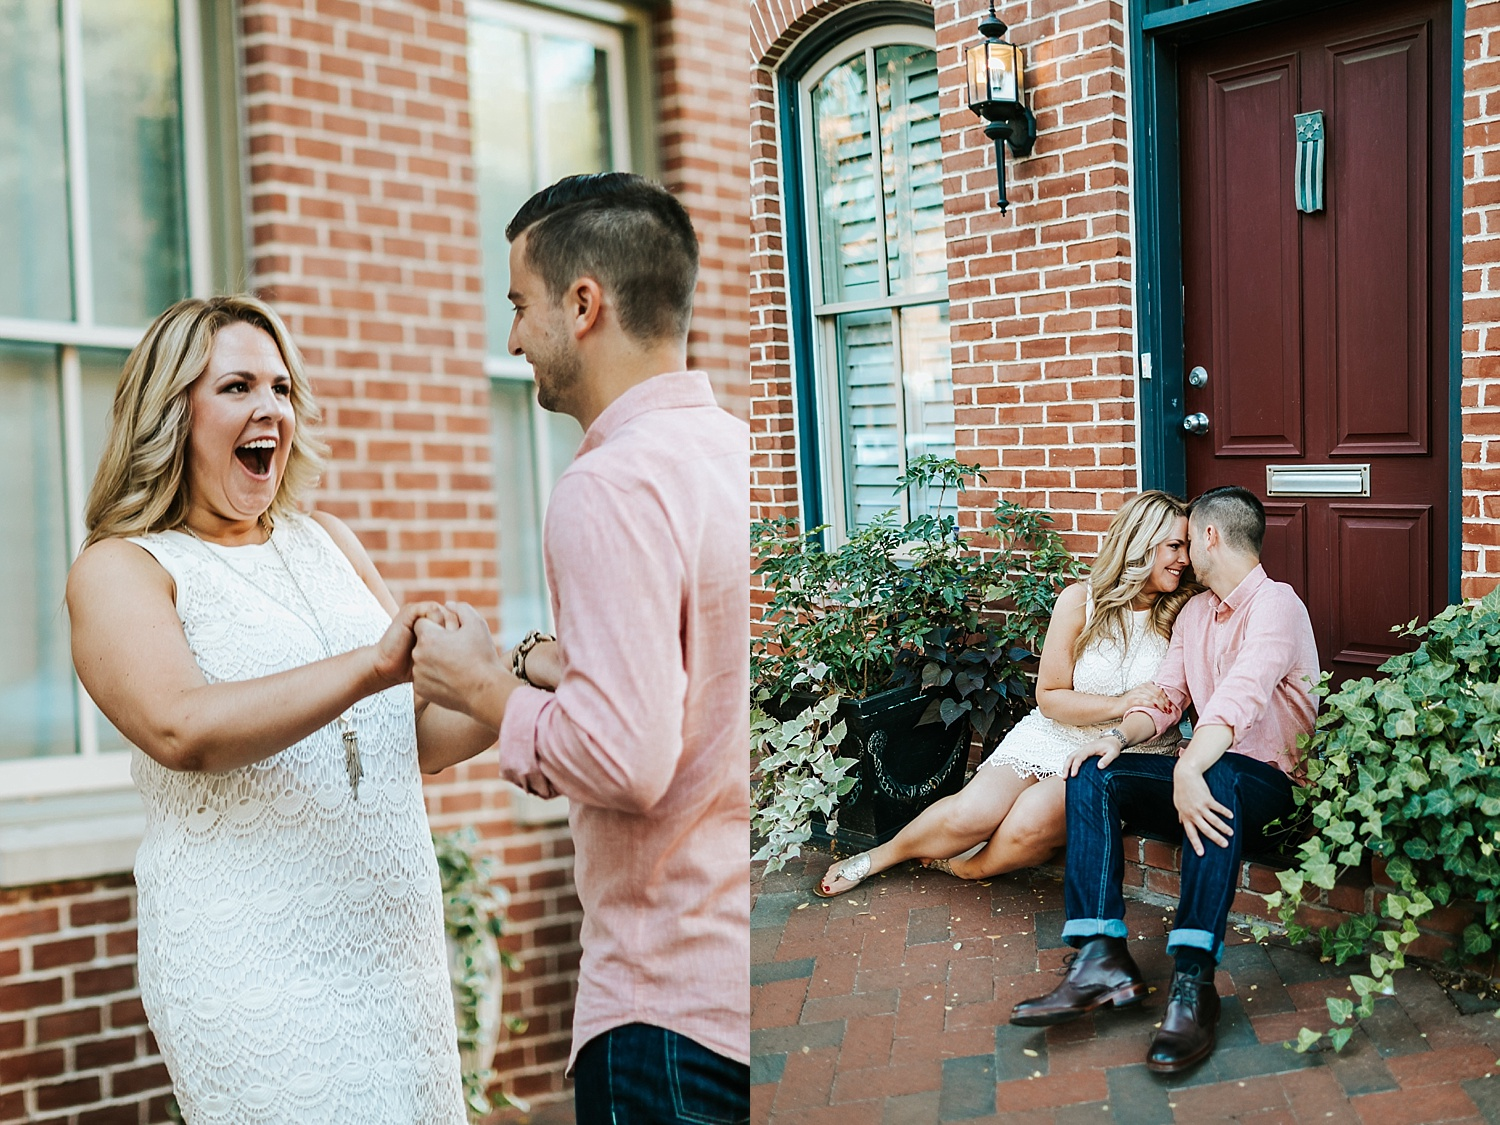 Fall engagement session at fells point